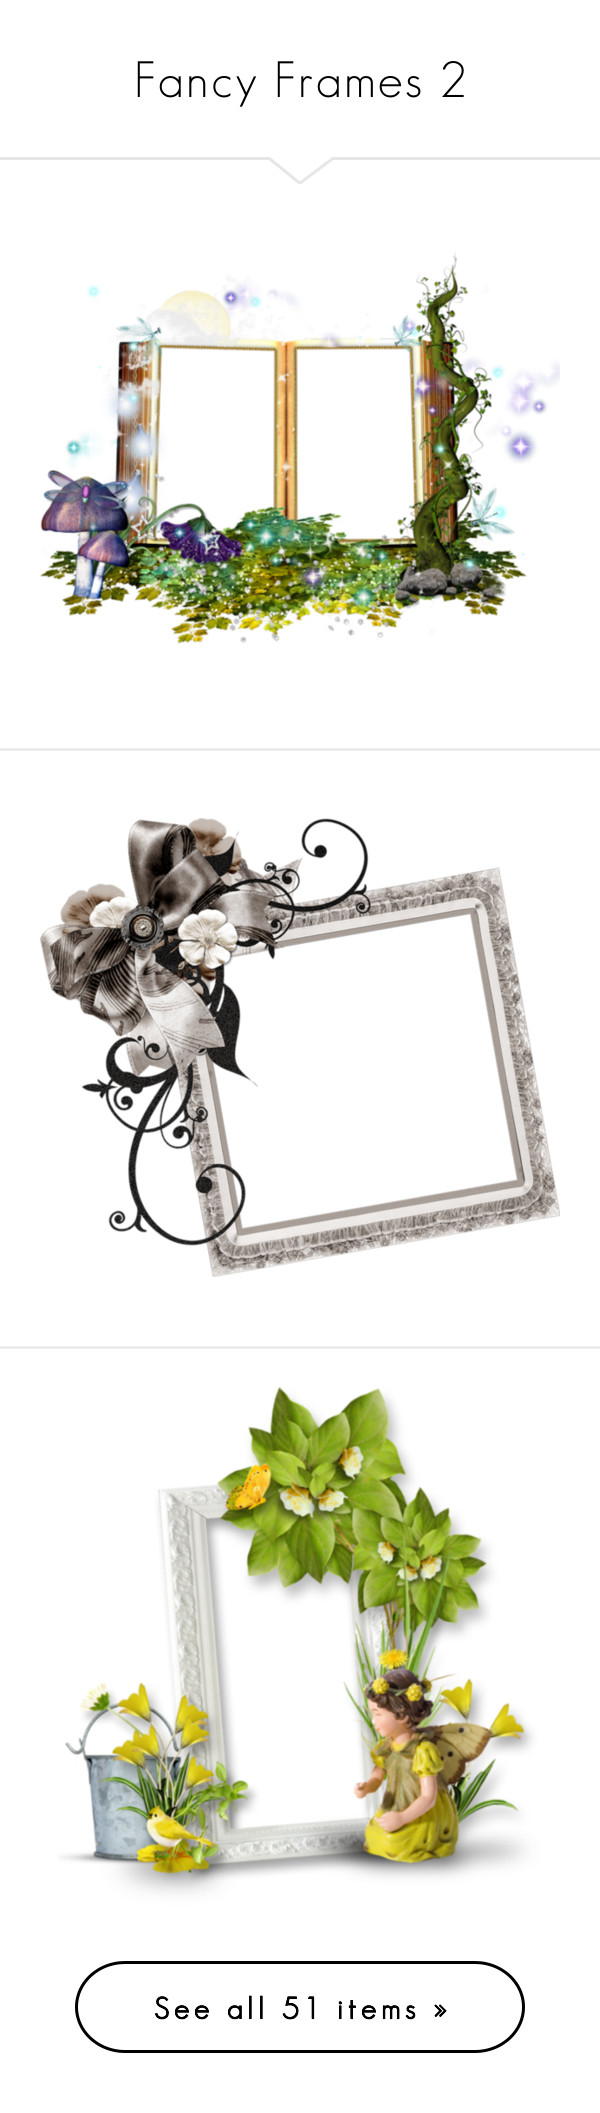 """""""Fancy Frames 2"""" by teresarussell49 ❤ liked on Polyvore featuring frames, clusters, borders, picture frame, fairies, art, backgrounds, flowers, tubes and fillers"""